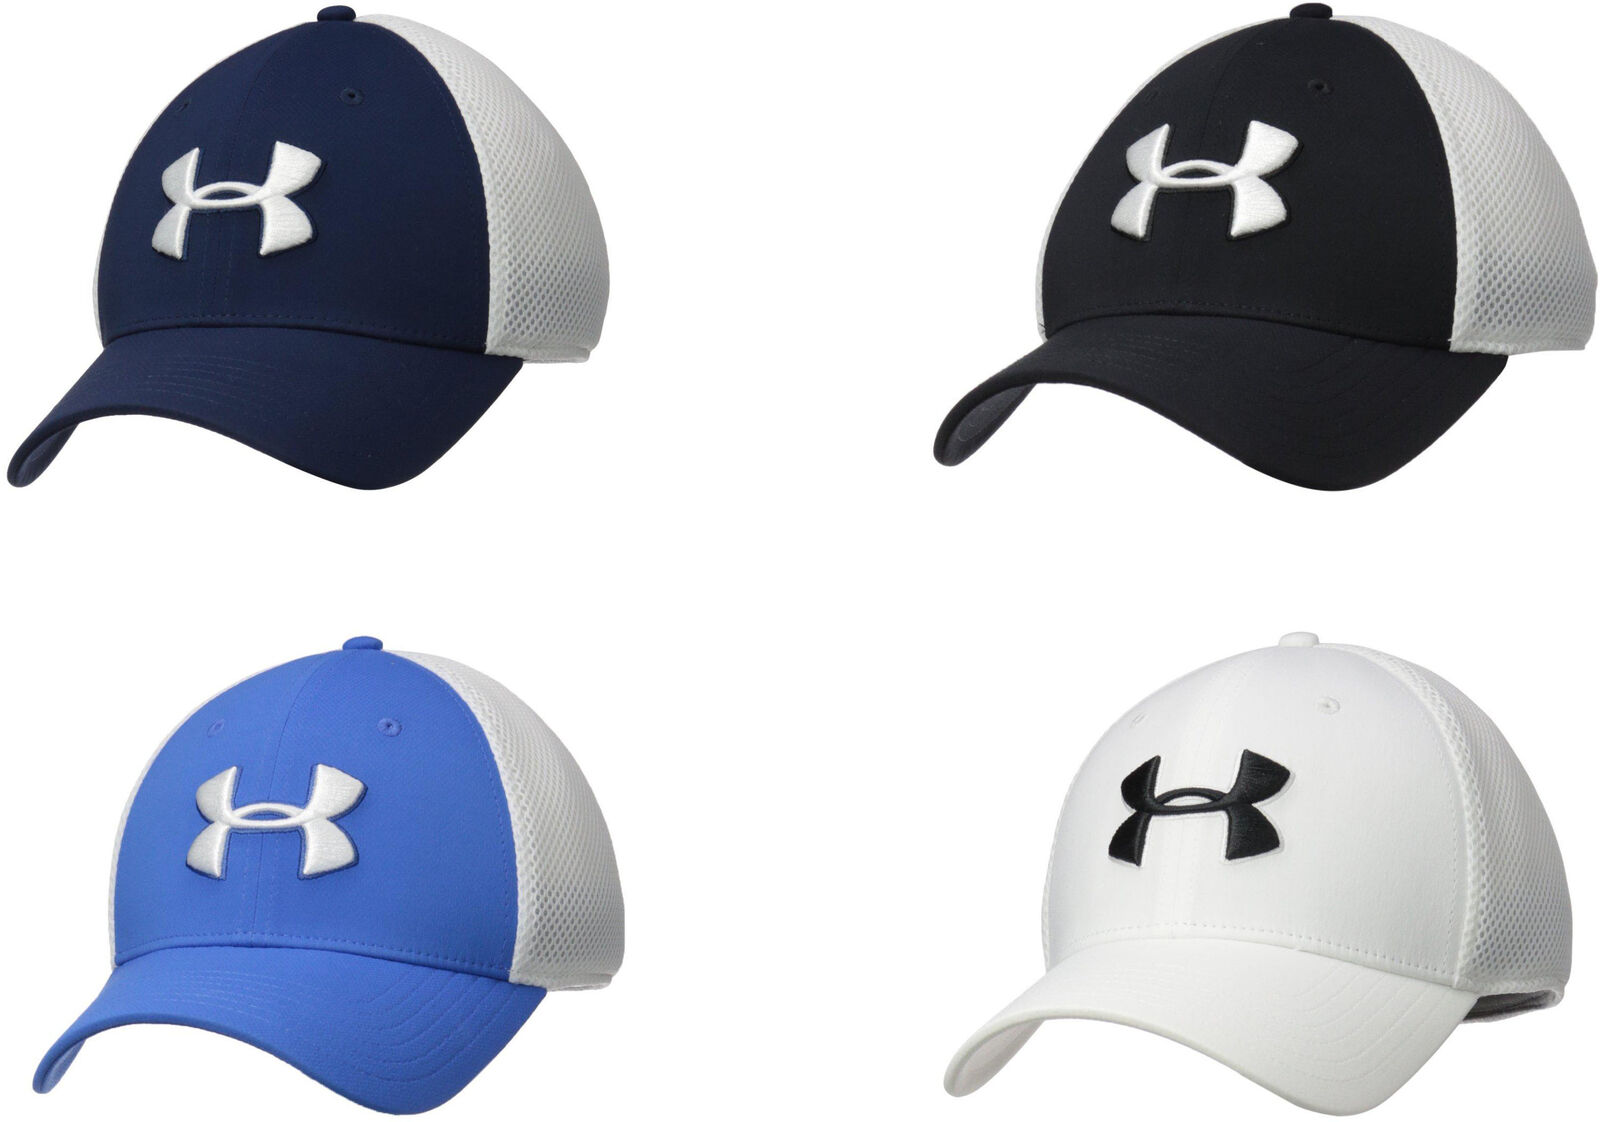 3a86d9b4b8b Under Armour Men s Threadborne Golf Mesh Cap